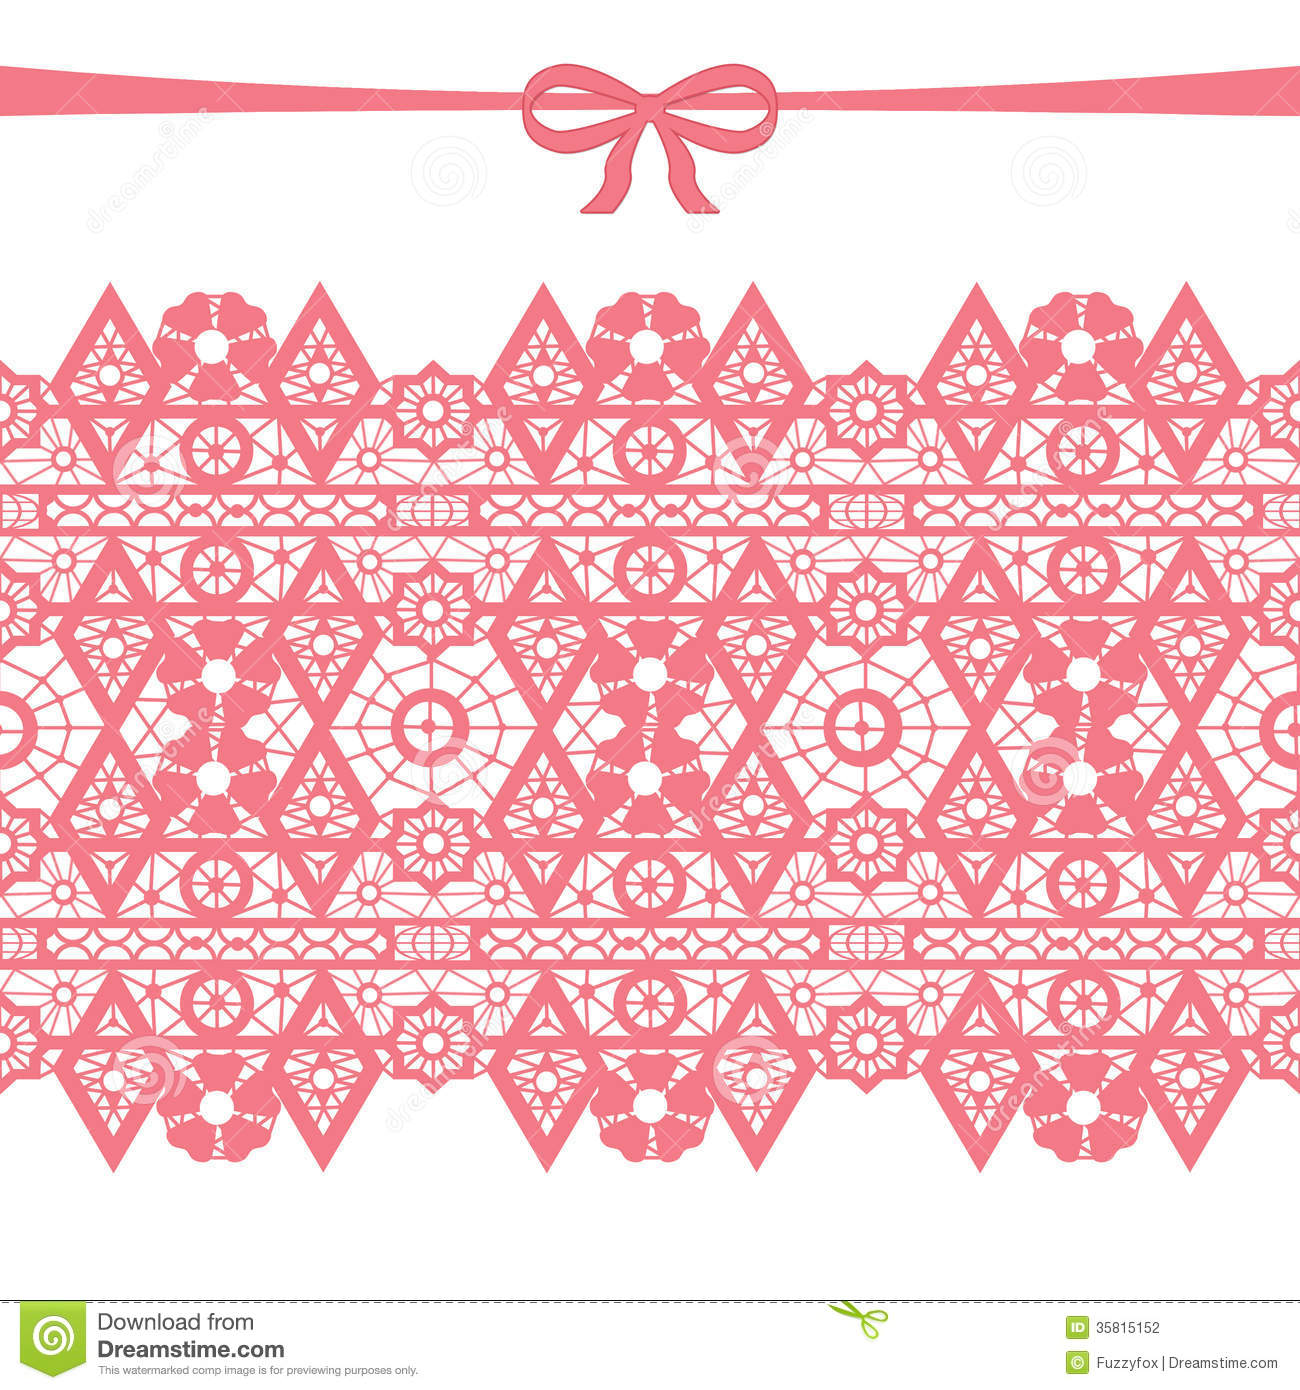 Black Pink And Silver Wallpaper Coral Seamless Lace Stock Illustration Image Of Backdrop